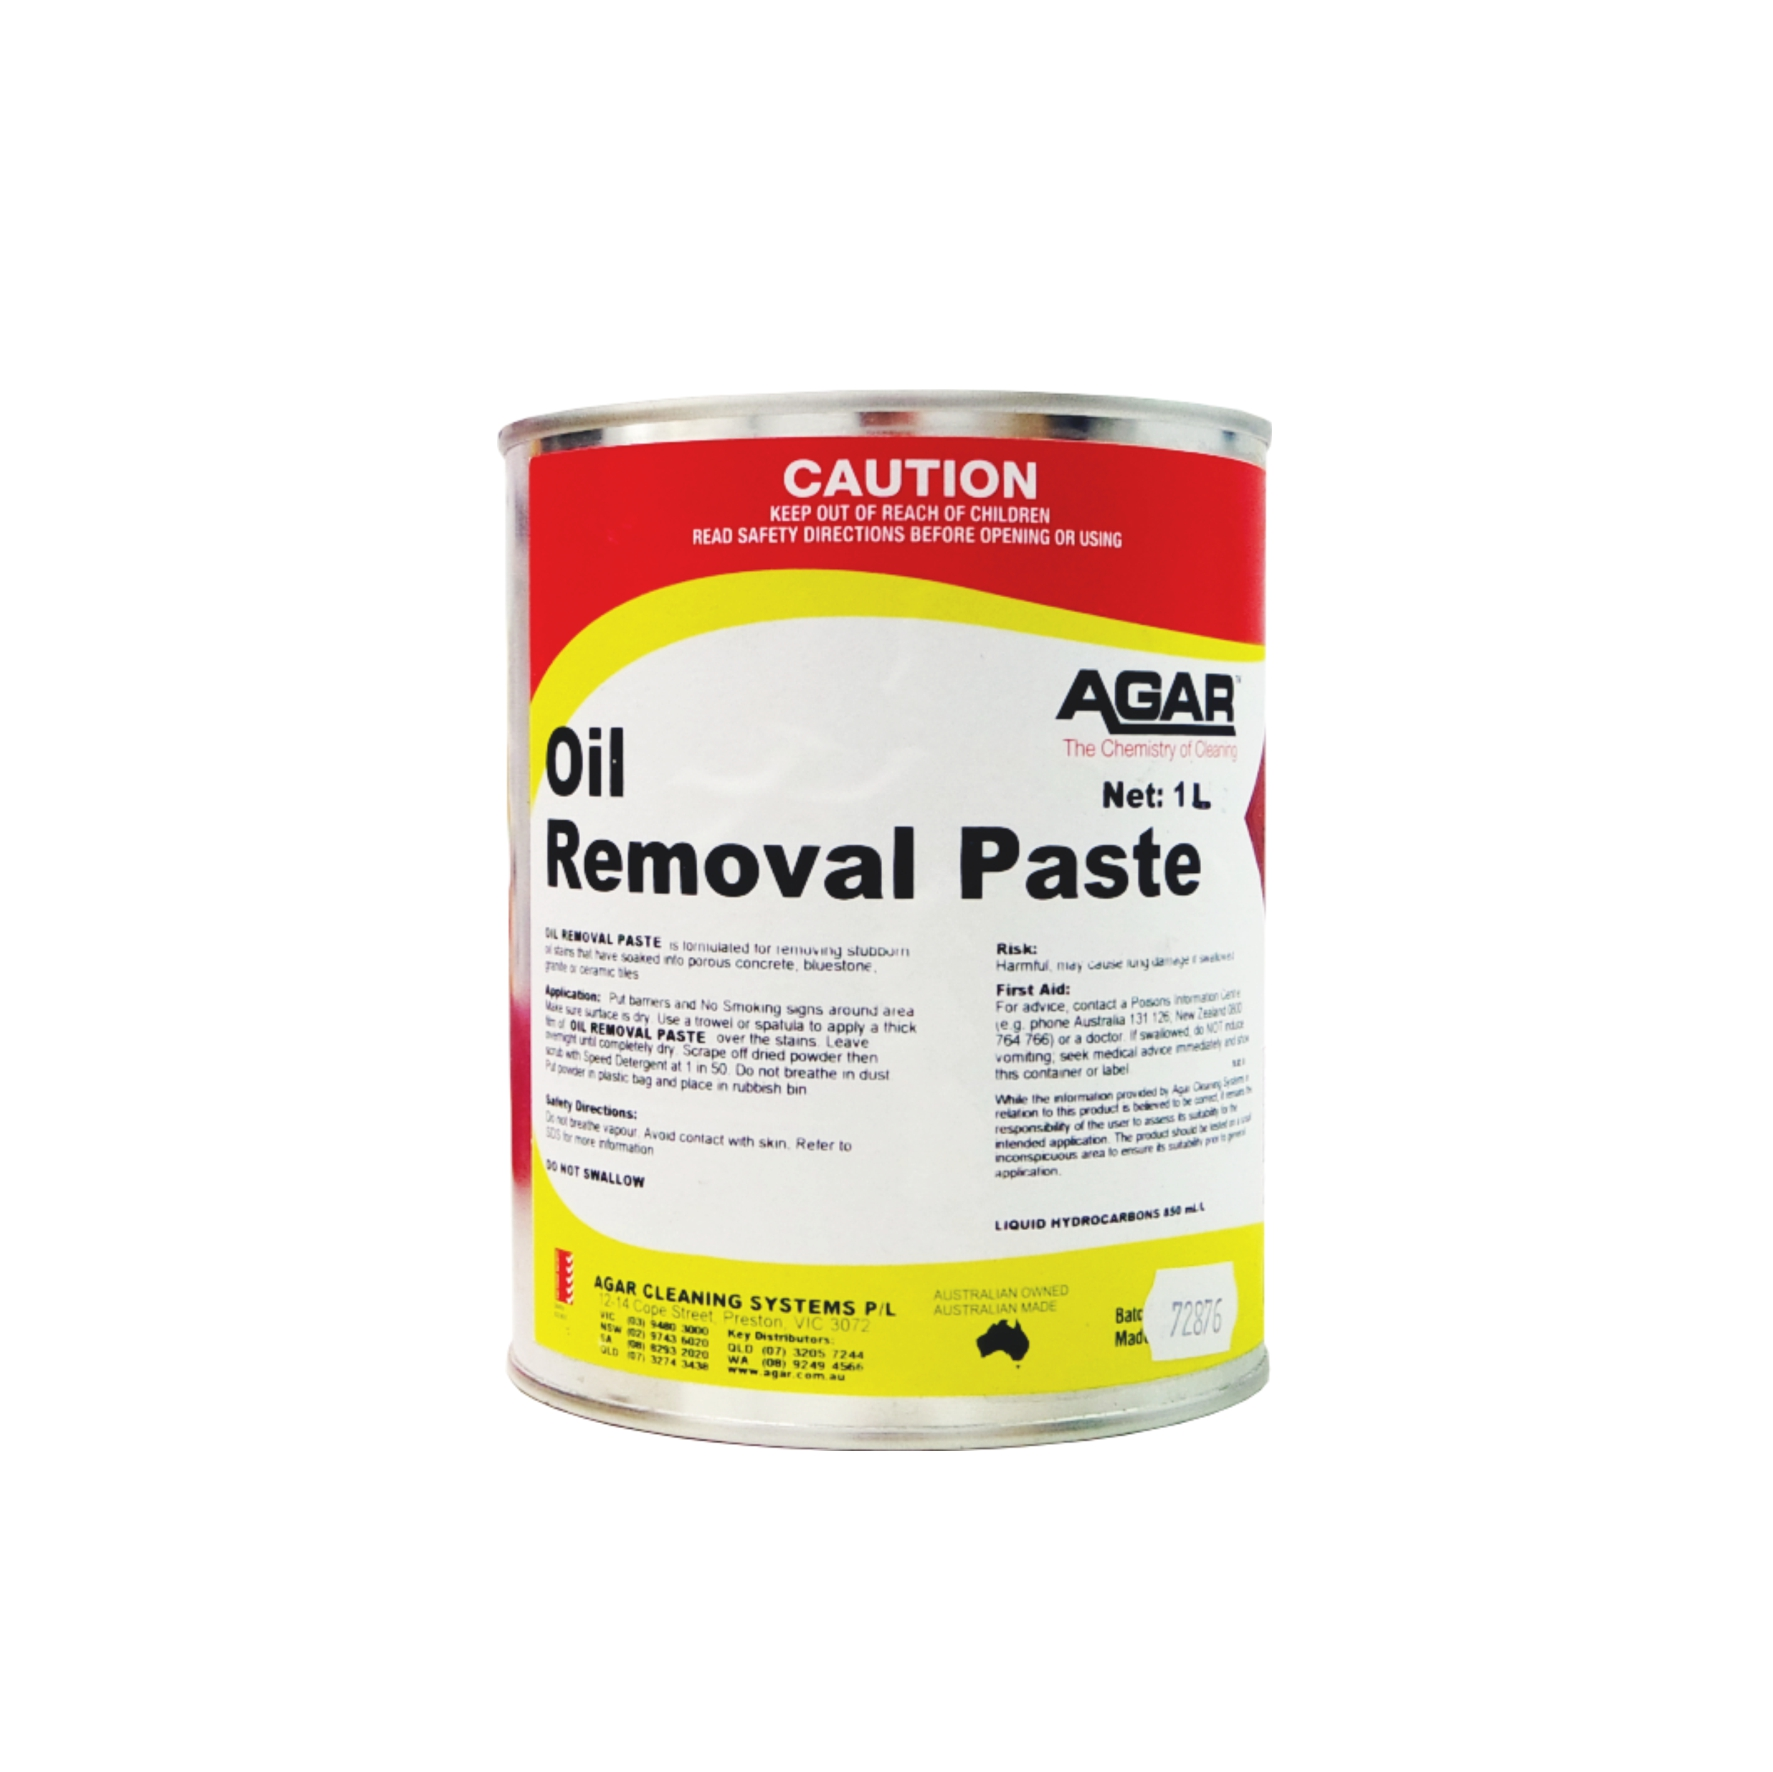 Oil Removal Paste Agar Cleaning Systems